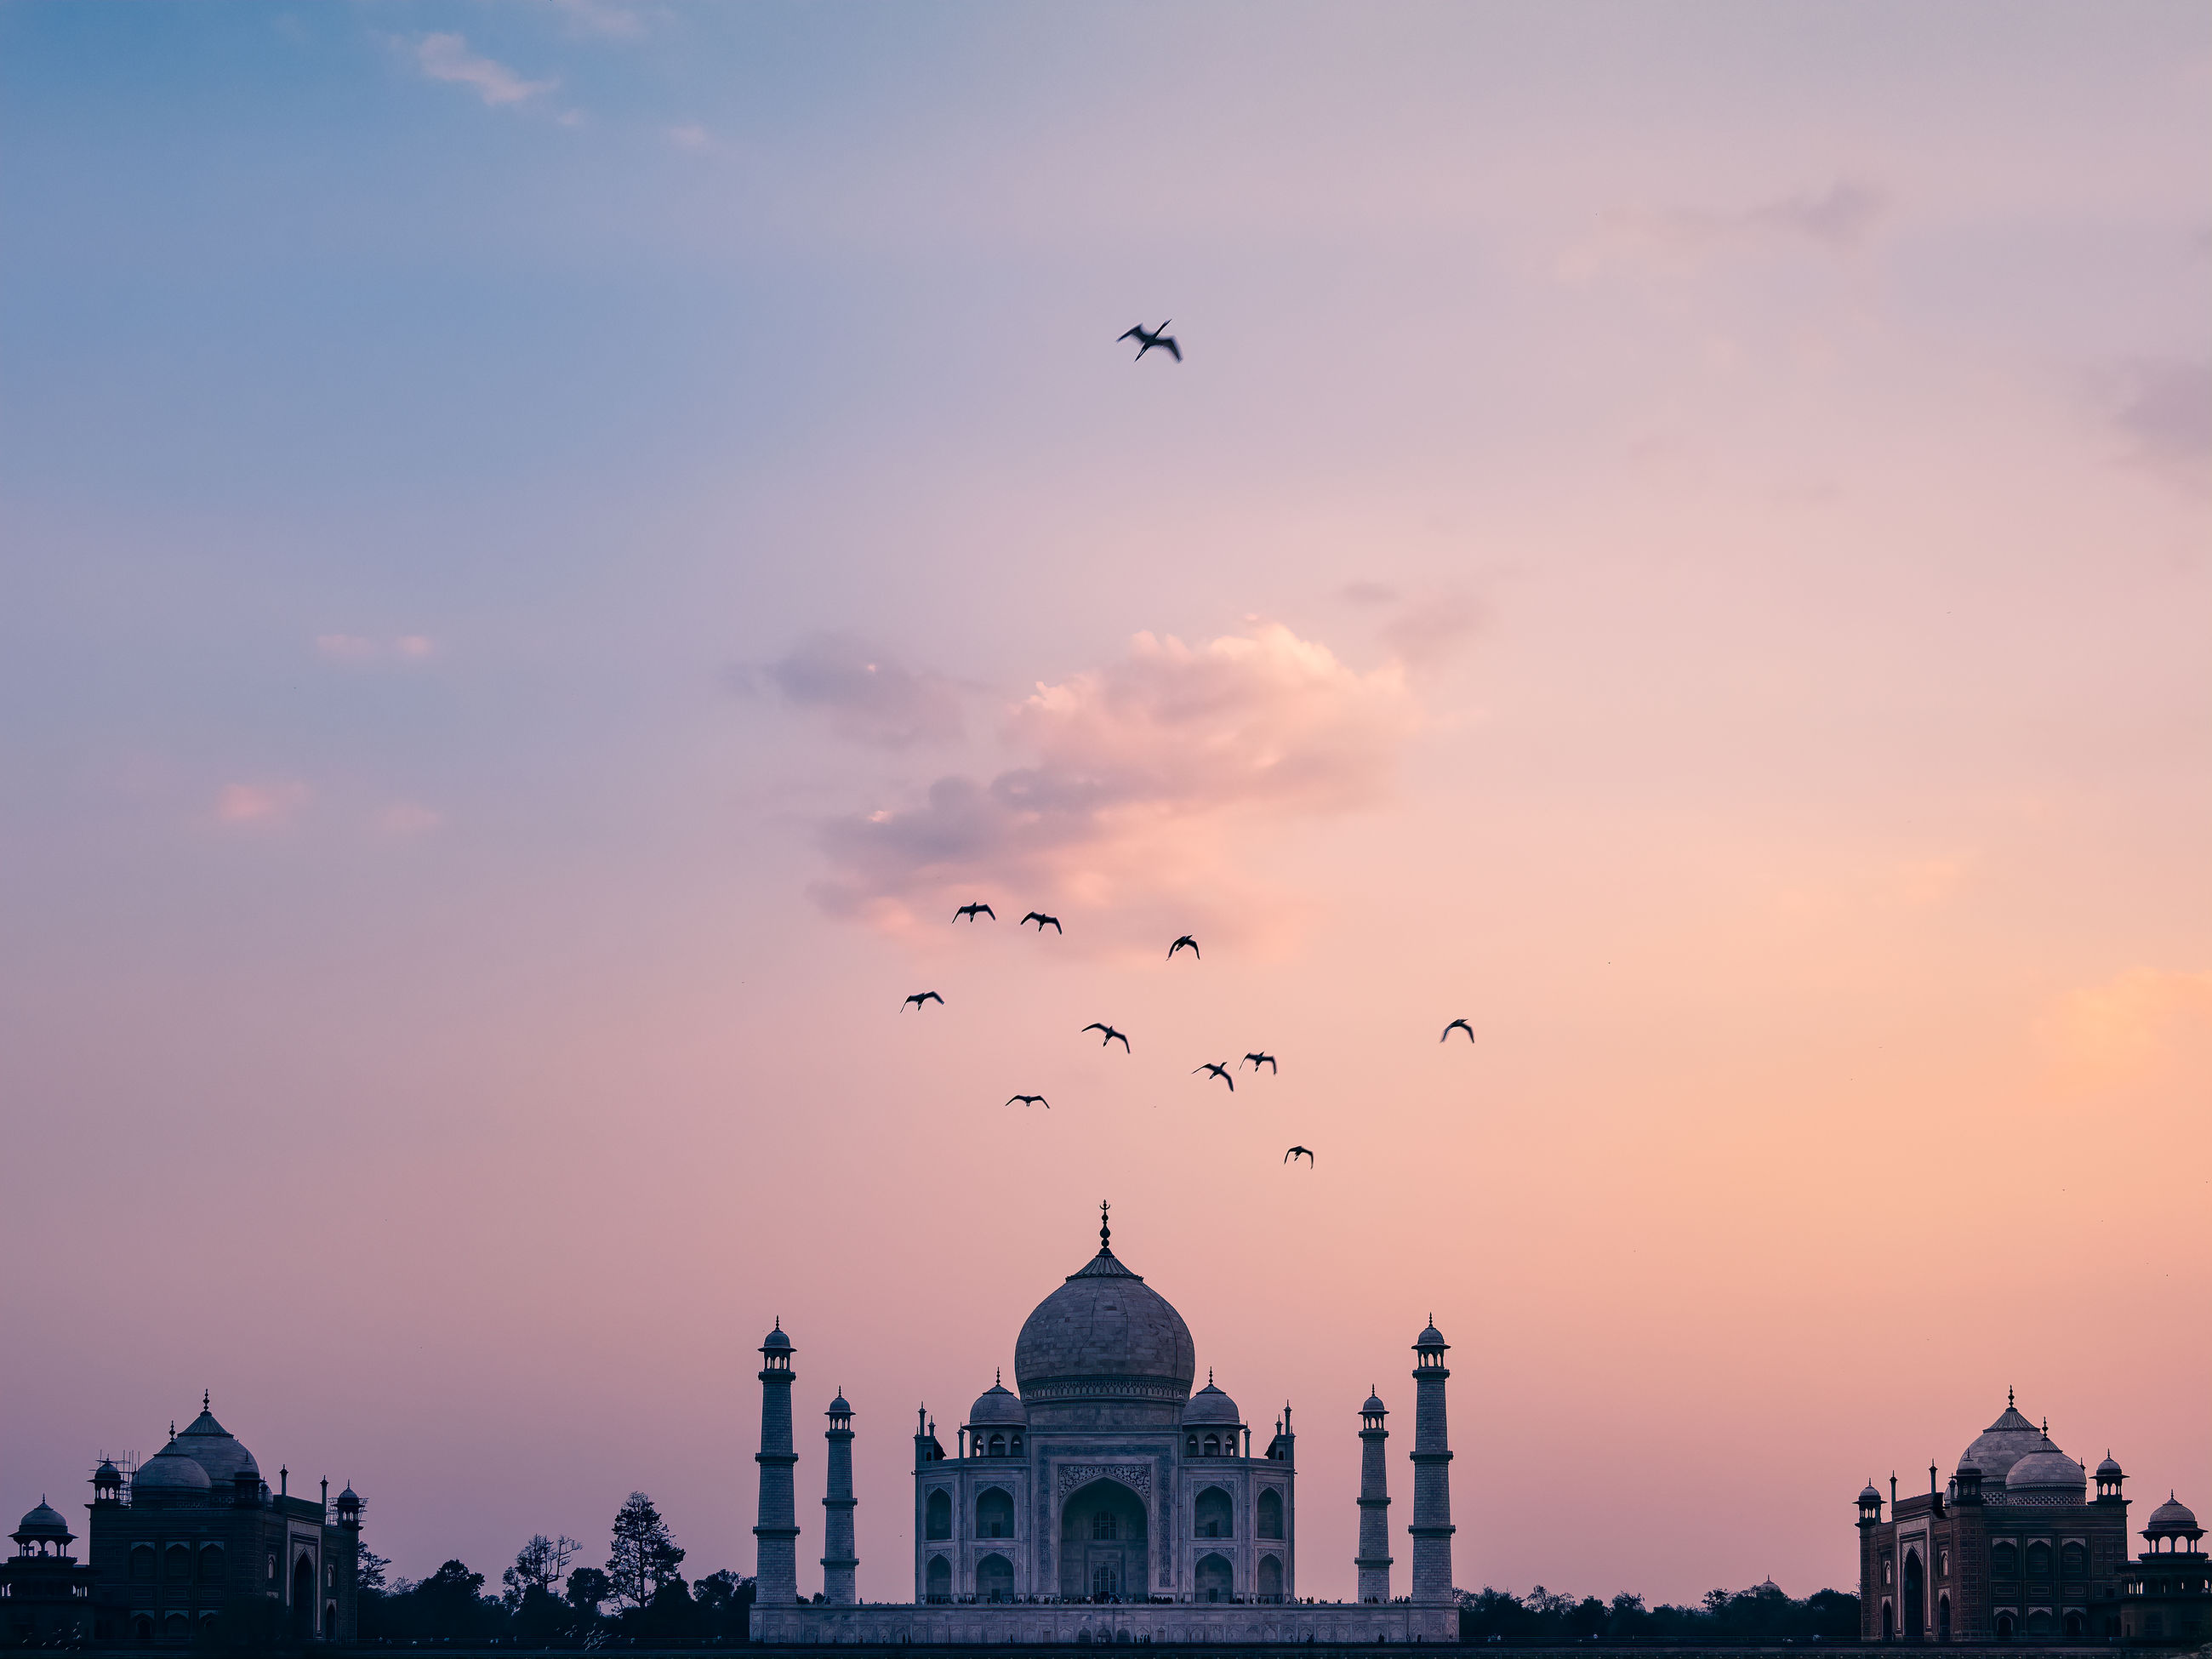 sky, sunset, flying, animal themes, vertebrate, animal, bird, built structure, animal wildlife, animals in the wild, architecture, building exterior, nature, orange color, group of animals, mid-air, cloud - sky, silhouette, large group of animals, travel destinations, no people, flock of birds